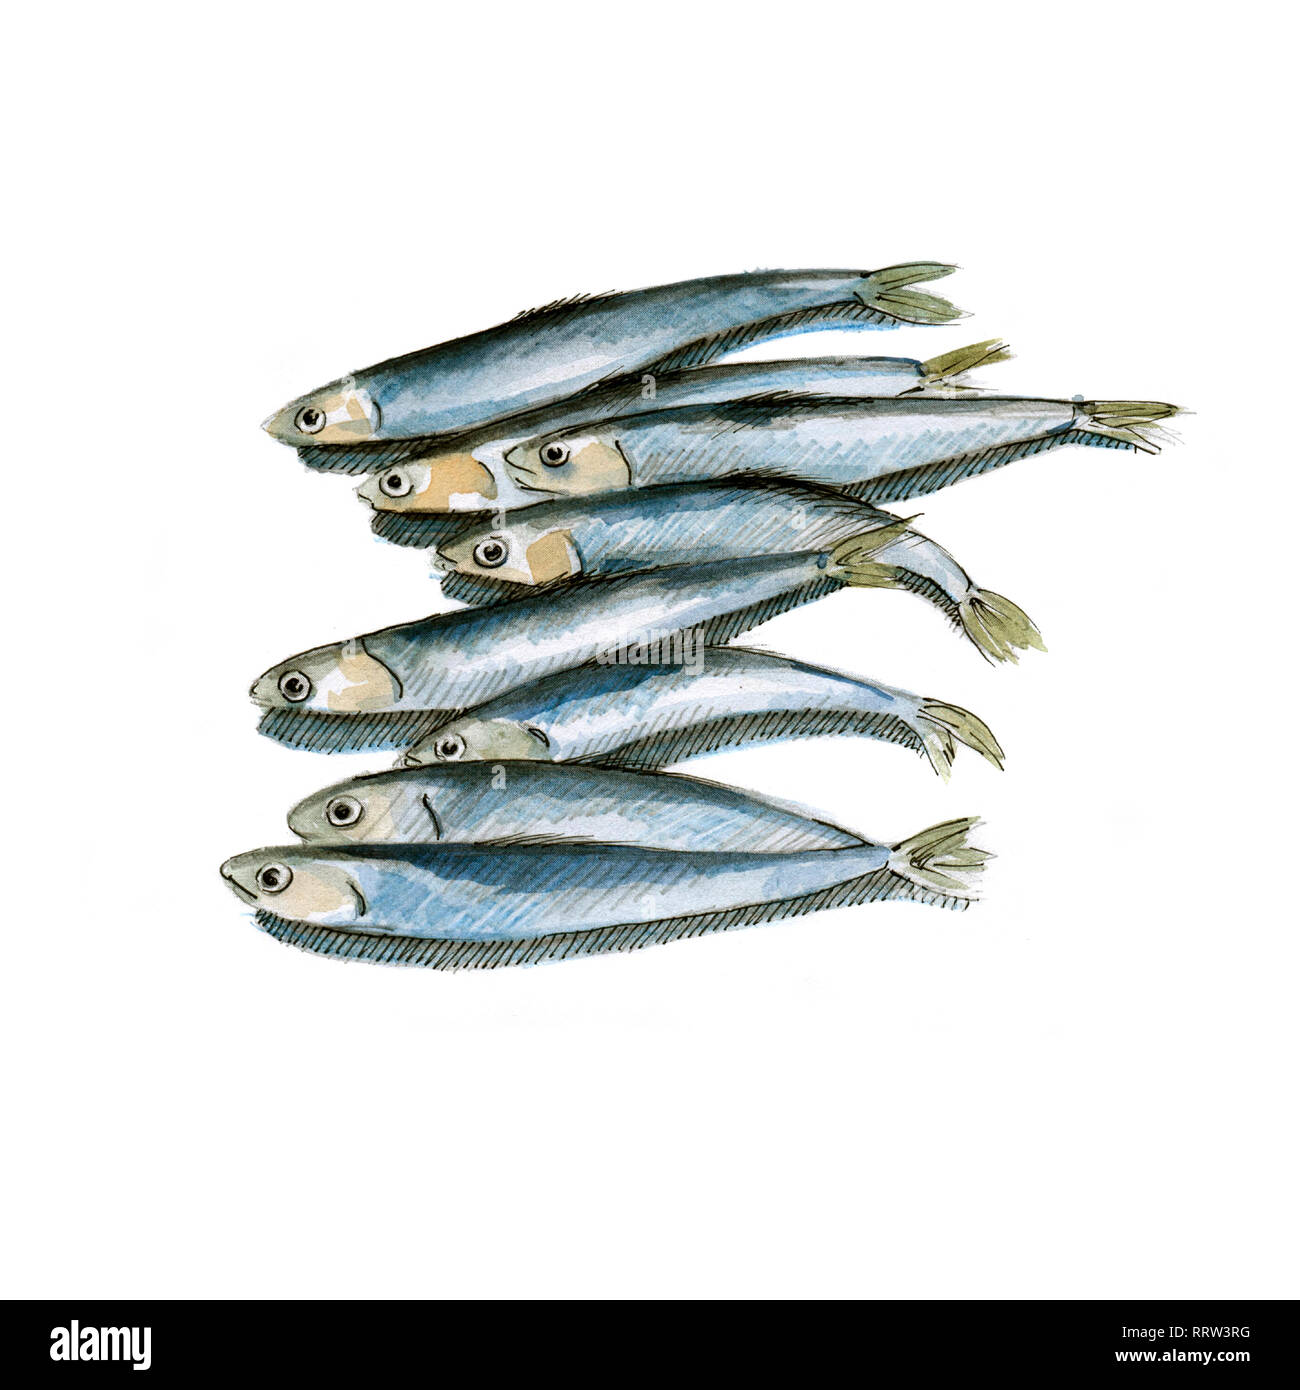 Anchovy watercolor illustration on white background - Stock Image